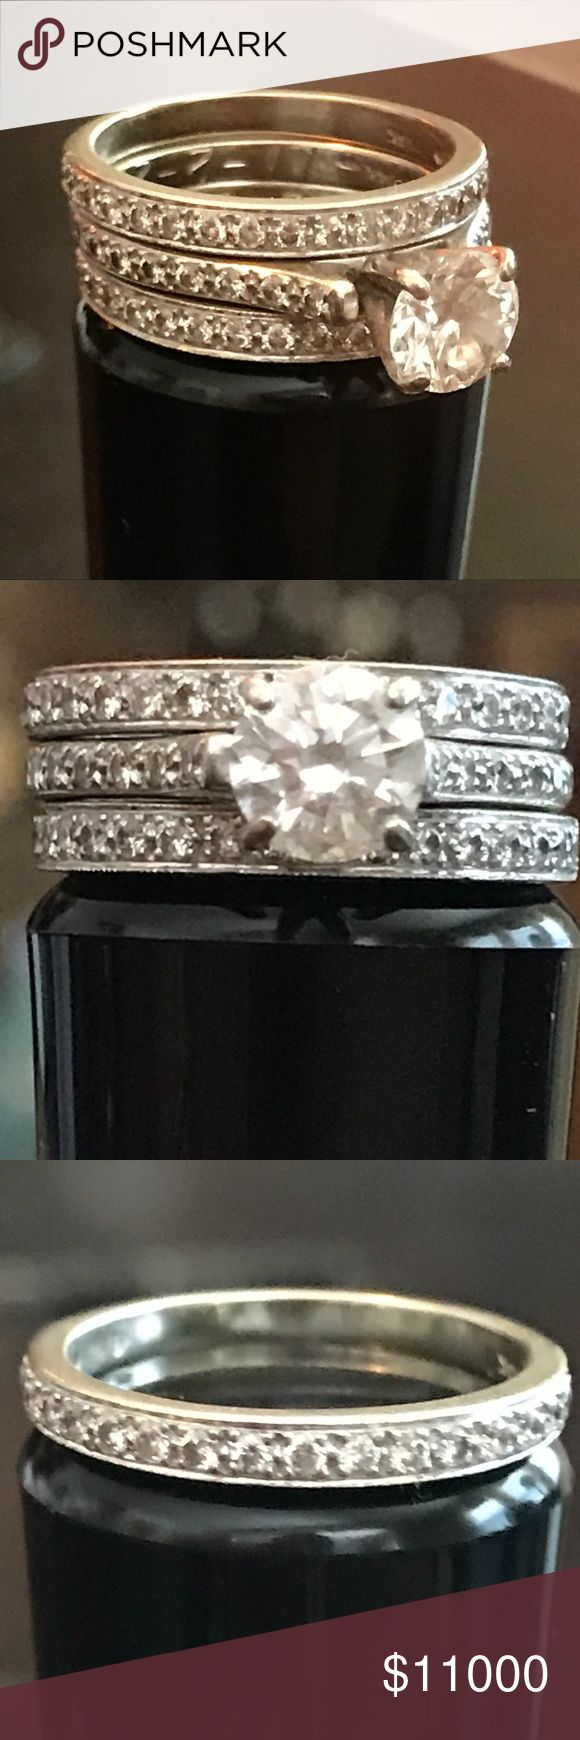 110% REAL DIAMOND Ring Set! Appraisal Guaranteed! Engagement Ring round cut 0.94 carat diamond & 16 brilliant cut natural diamonds = 0.20 carats. For total ring weight of 1.14 Carats.  14K White Gold Color is I, clarity SI-1 GIA attached.  Finish brilliant. Engagement ring is engraved with date 11-2-2007.  very good condition! Wedding bands consist of 20 brilliant cut natural diamonds totalling 0.24 carats per ring. Color G-H, Claritity VS2-VS1. one ring engraved with 1-3-2009. Guarranteed…